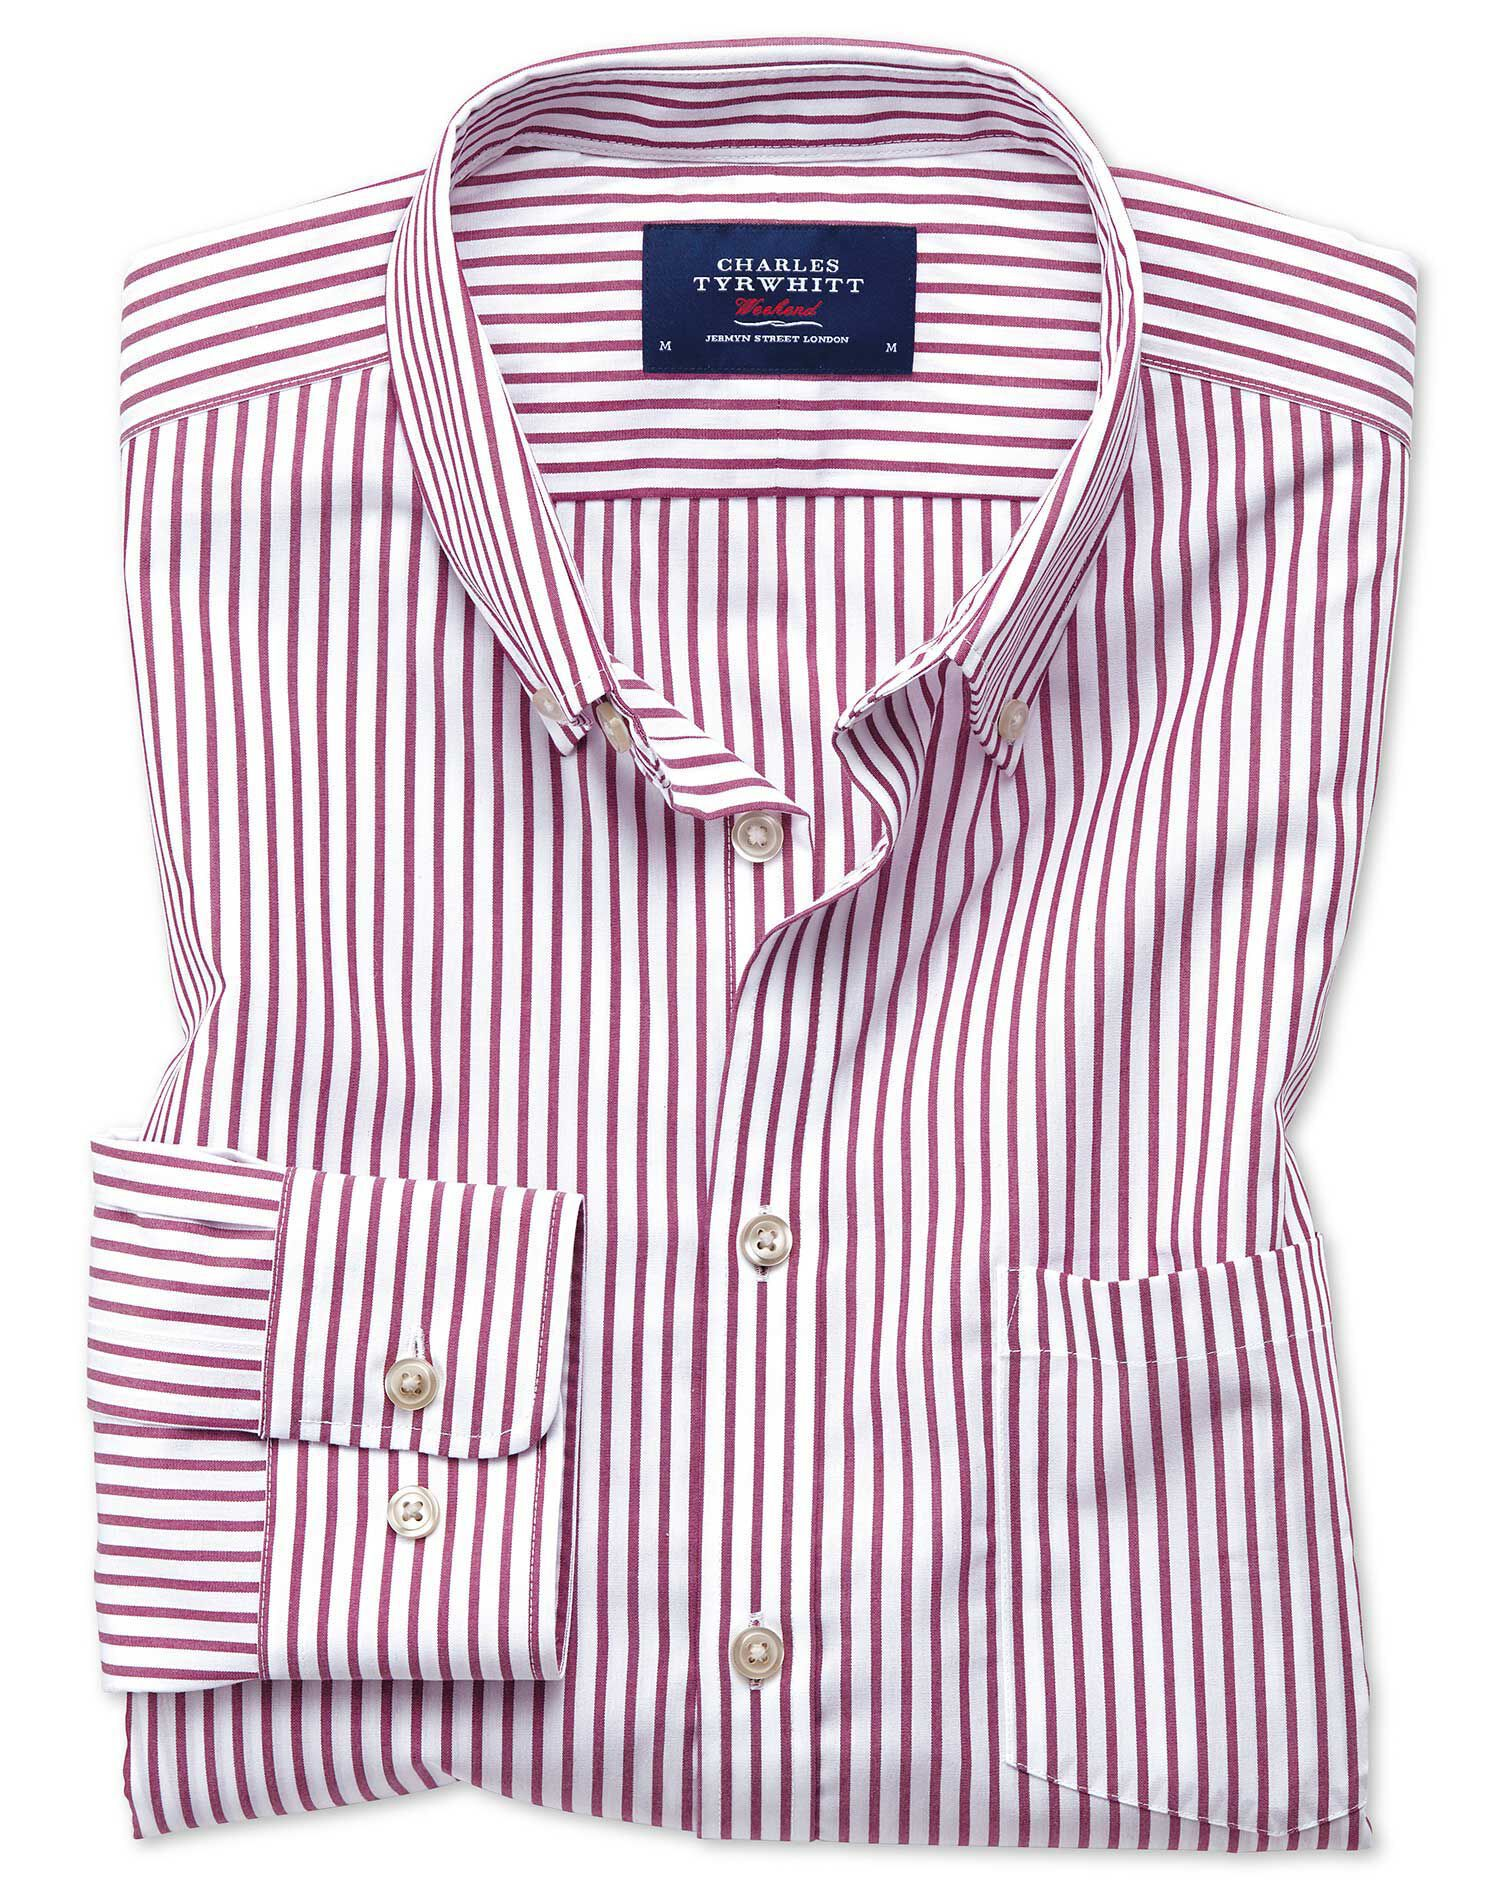 Classic Fit Button-Down Non-Iron Poplin Berry Stripe Cotton Shirt Single Cuff Size XXXL by Charles T